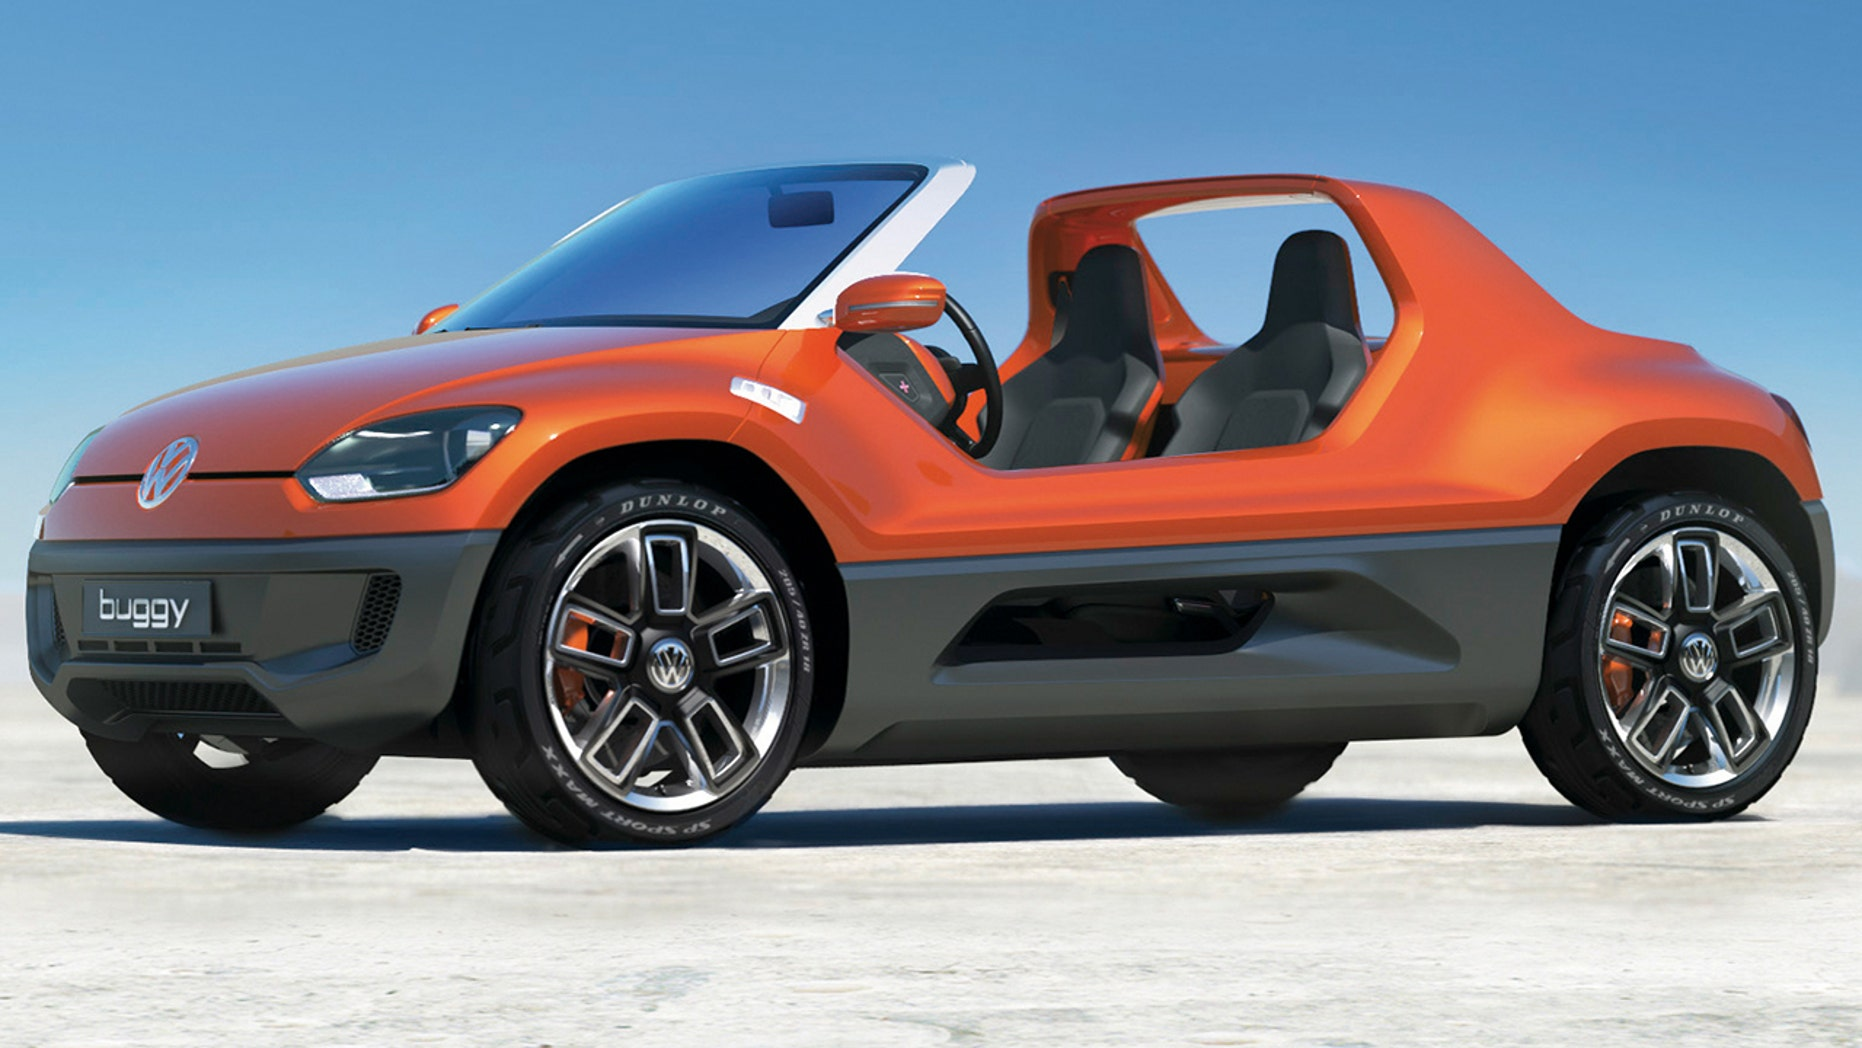 The Buggy Up Concept Offers An Idea Of What A Futuristic Vw Off Roader